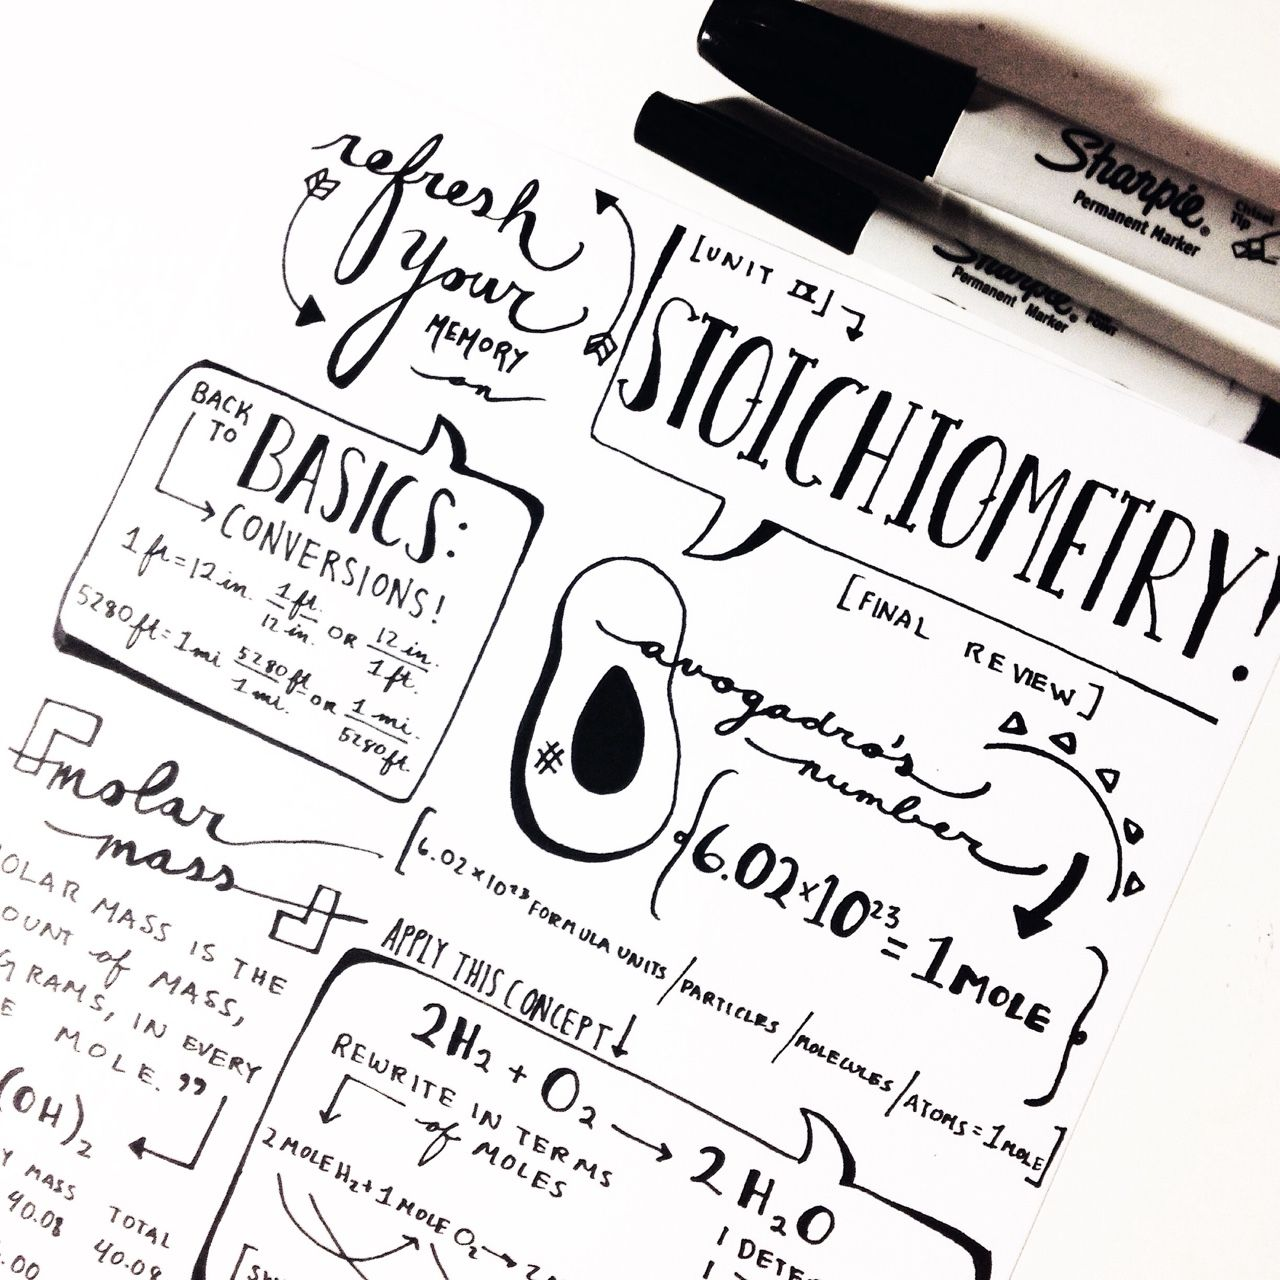 Pharmbunny Workspaced A Class Set Of Notes For A Stoichiometry Lesson I Taught That Avocado